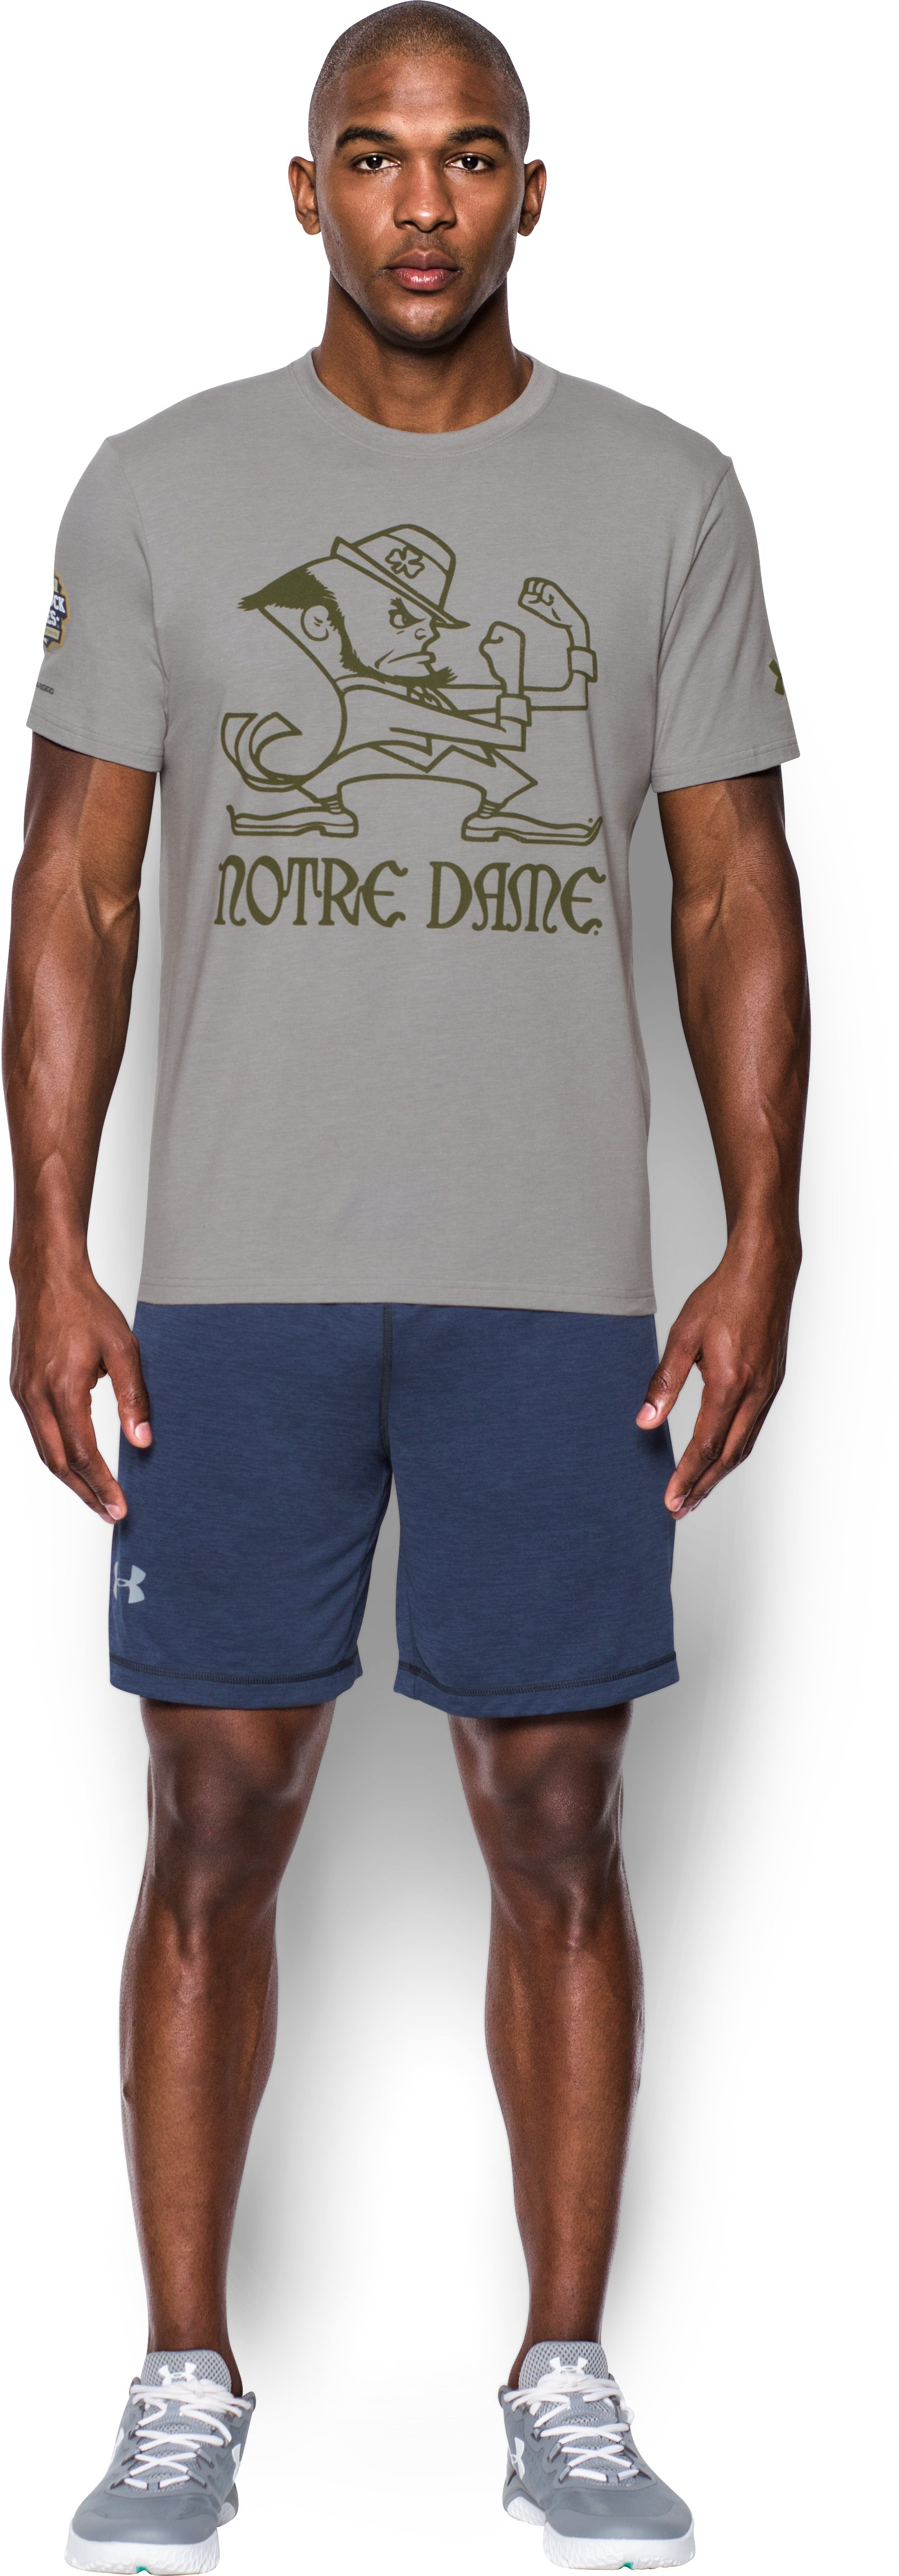 Men's Notre Dame UA Leprechaun T-Shirt, True Gray Heather, zoomed image